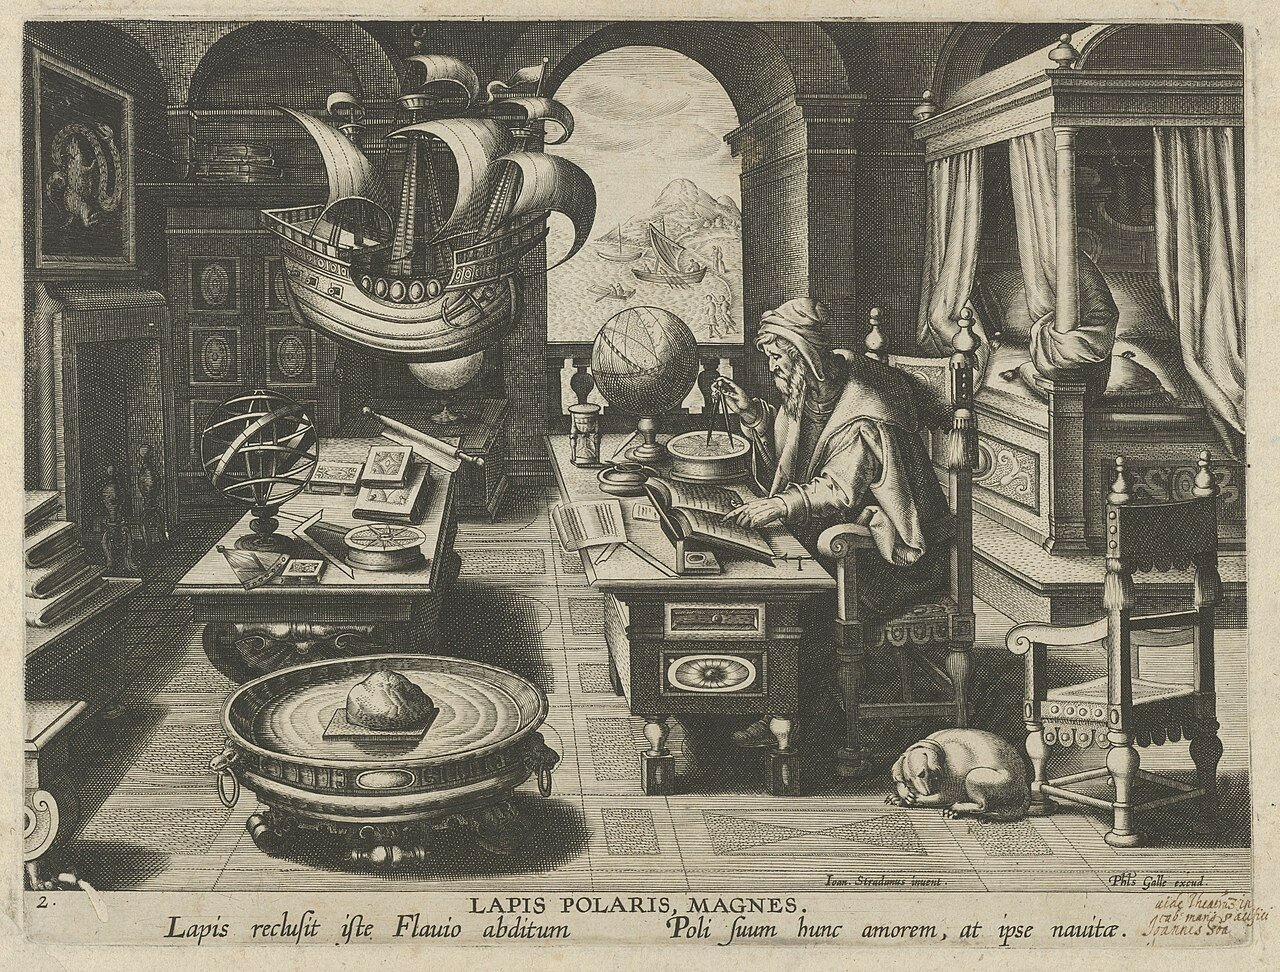 1280px-New_Inventions_of_Modern_Times_-Nova_Reperta-,_The_Invention_of_the_Compass,_plate_2_MET_DP841121.jpg